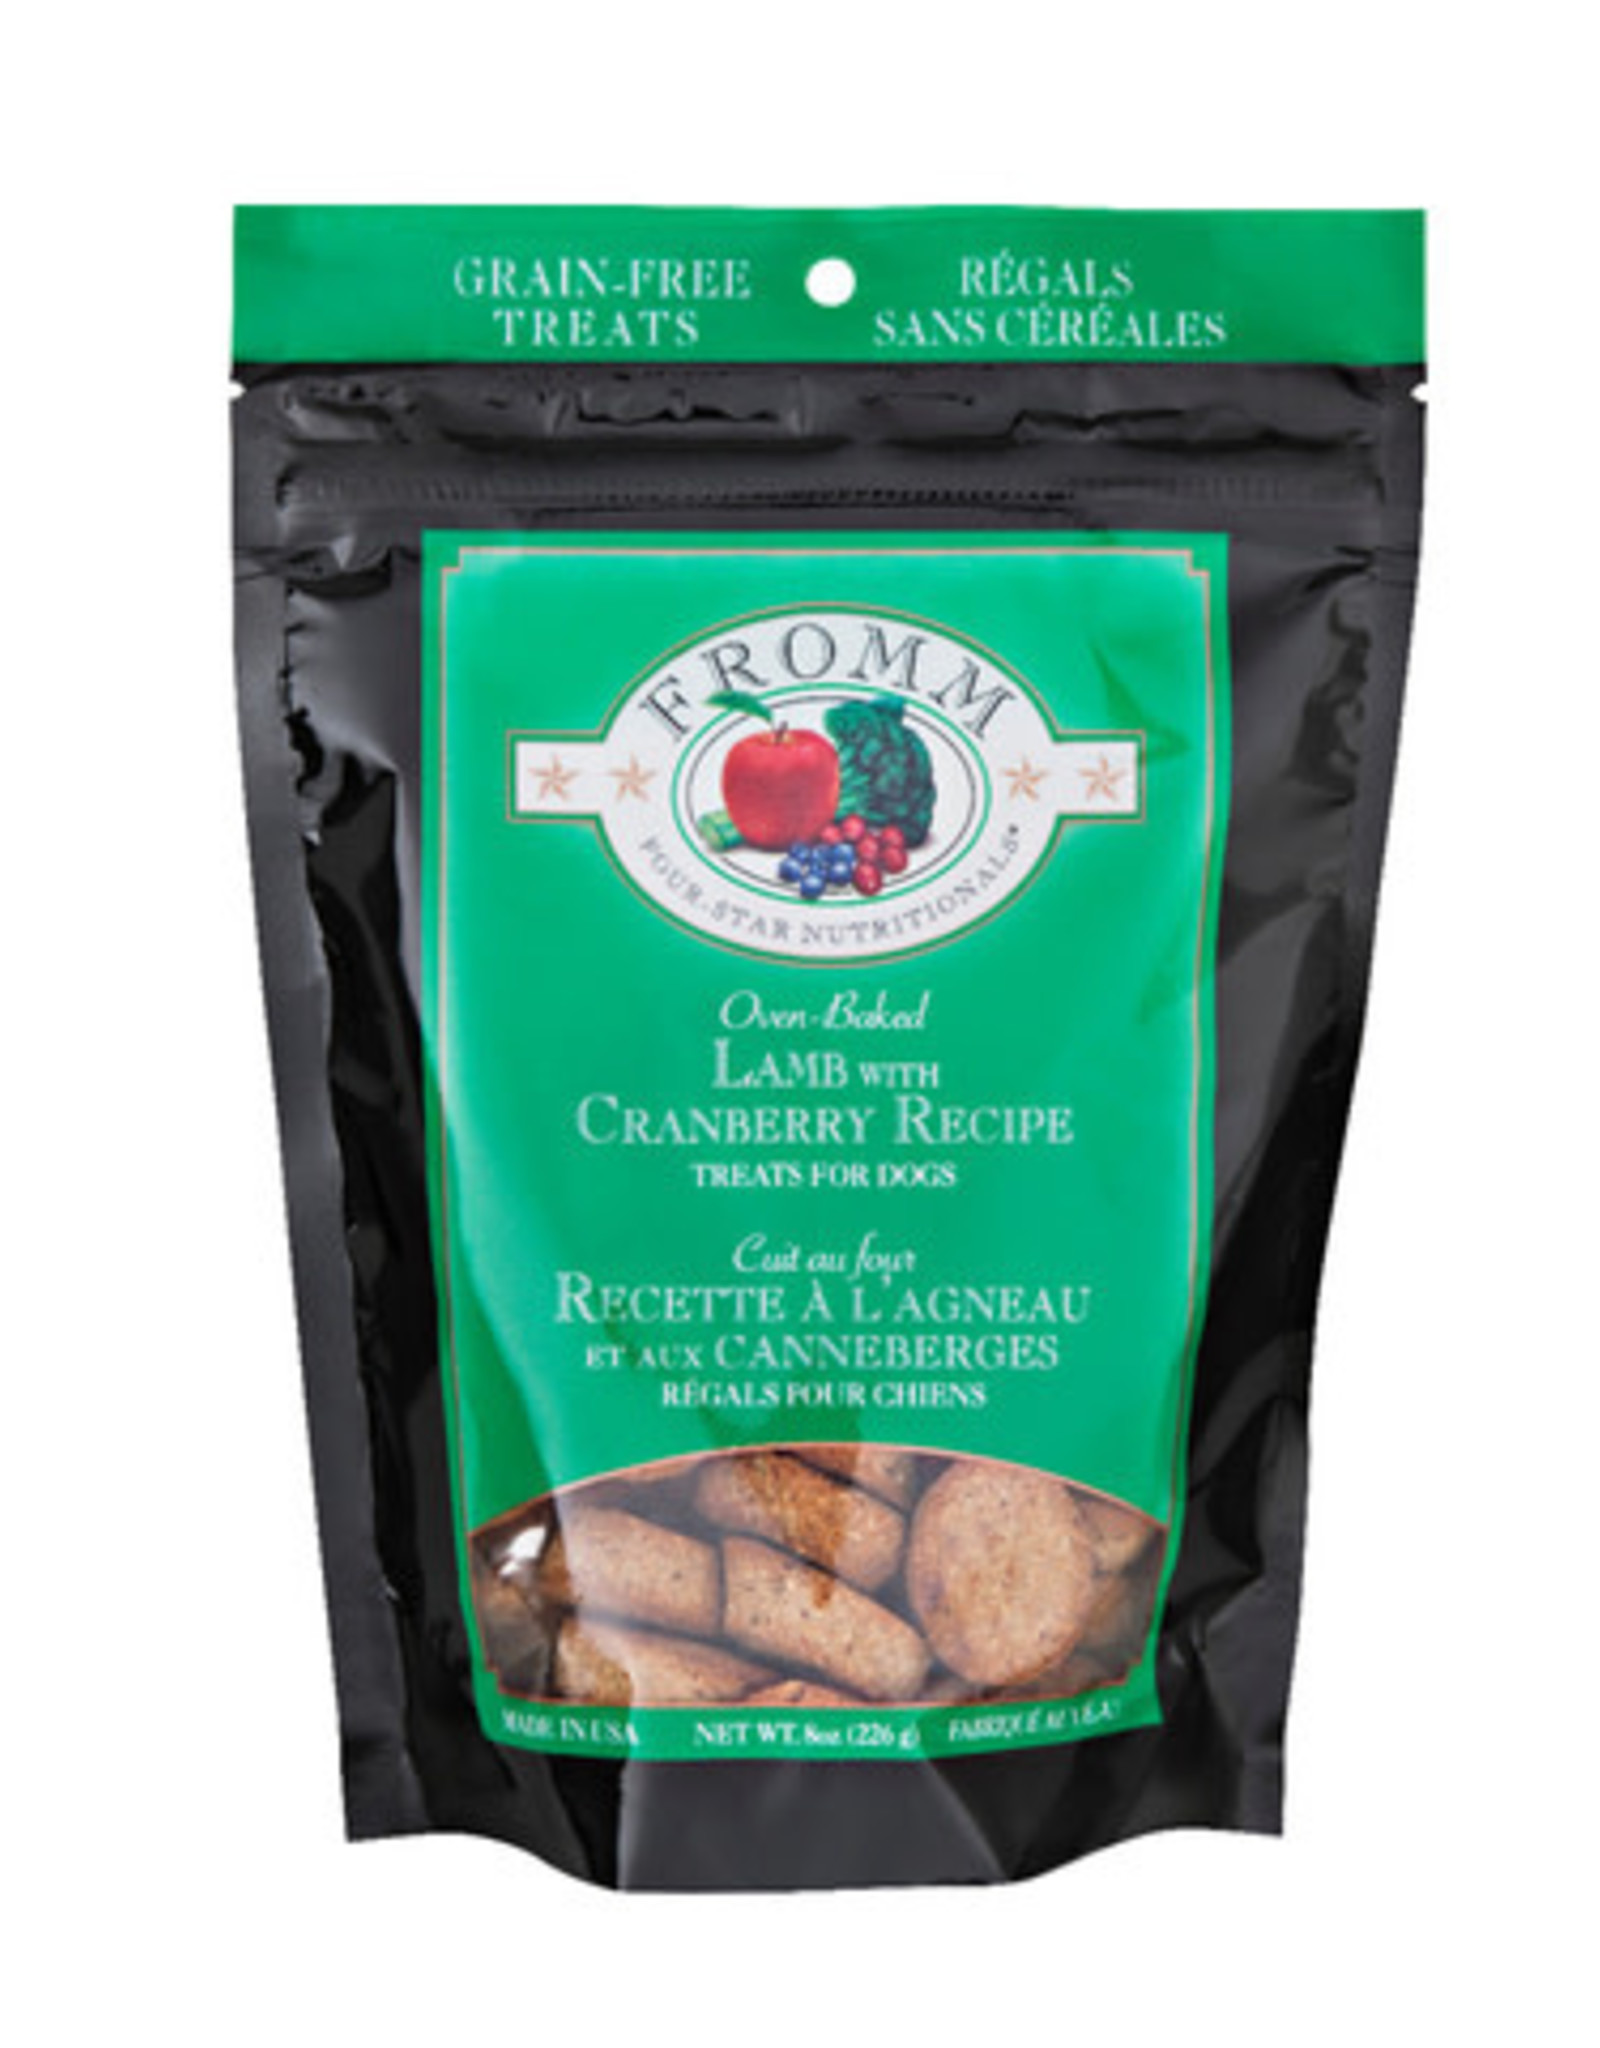 FROMM LAMB WITH CRANBERRY TREATS, 8 OZ. POUCH GRAIN-FREE